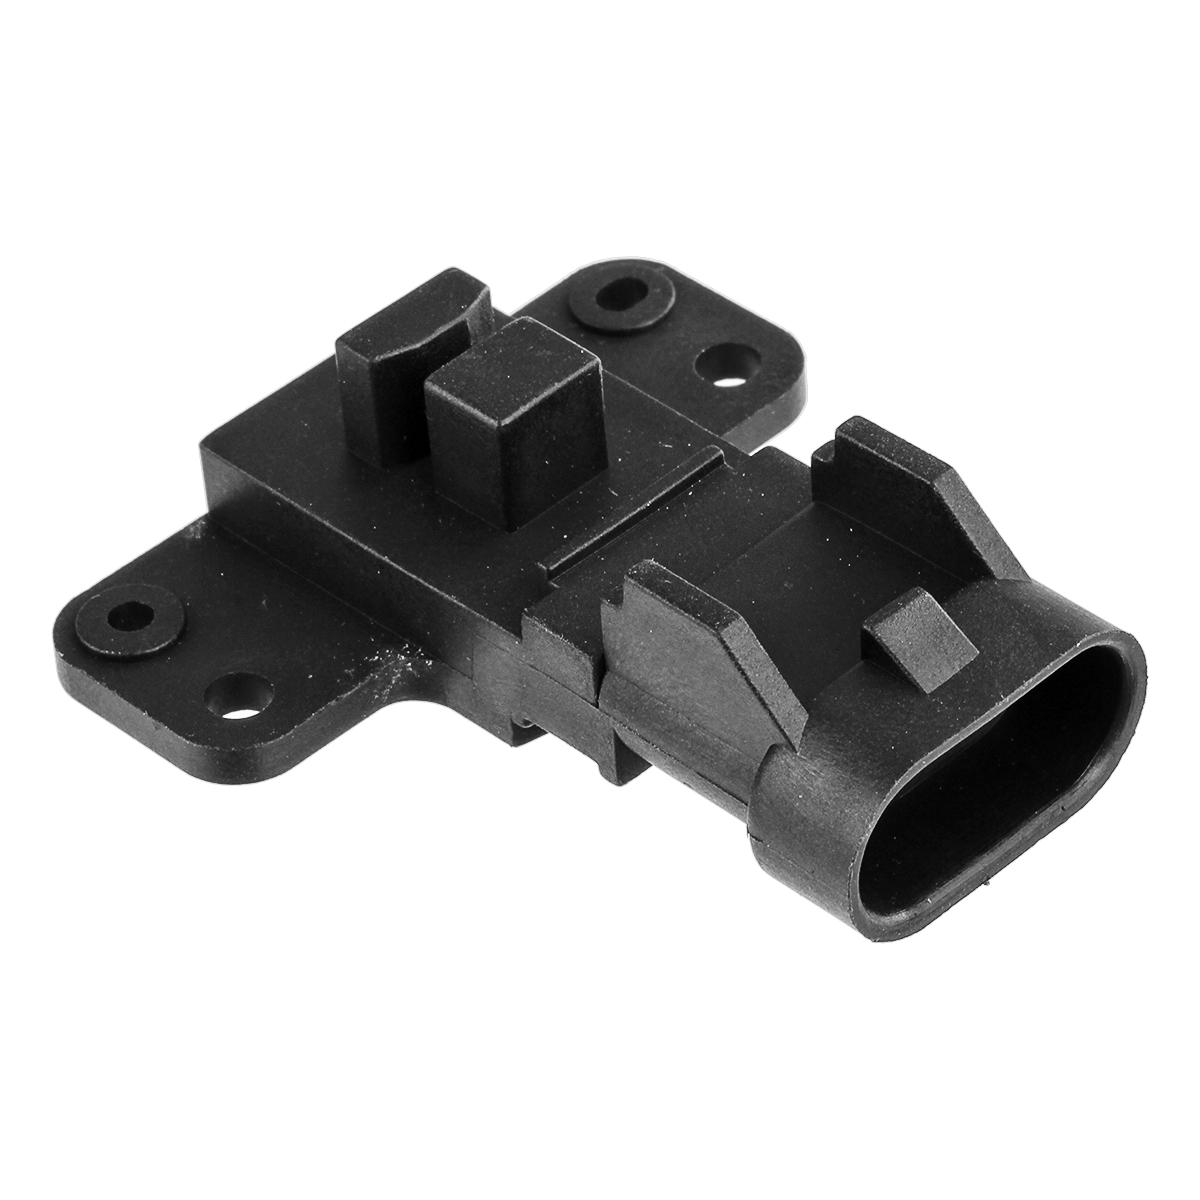 LX756 Camshaft Position Sensor For 1996-1998 Chevrolet C